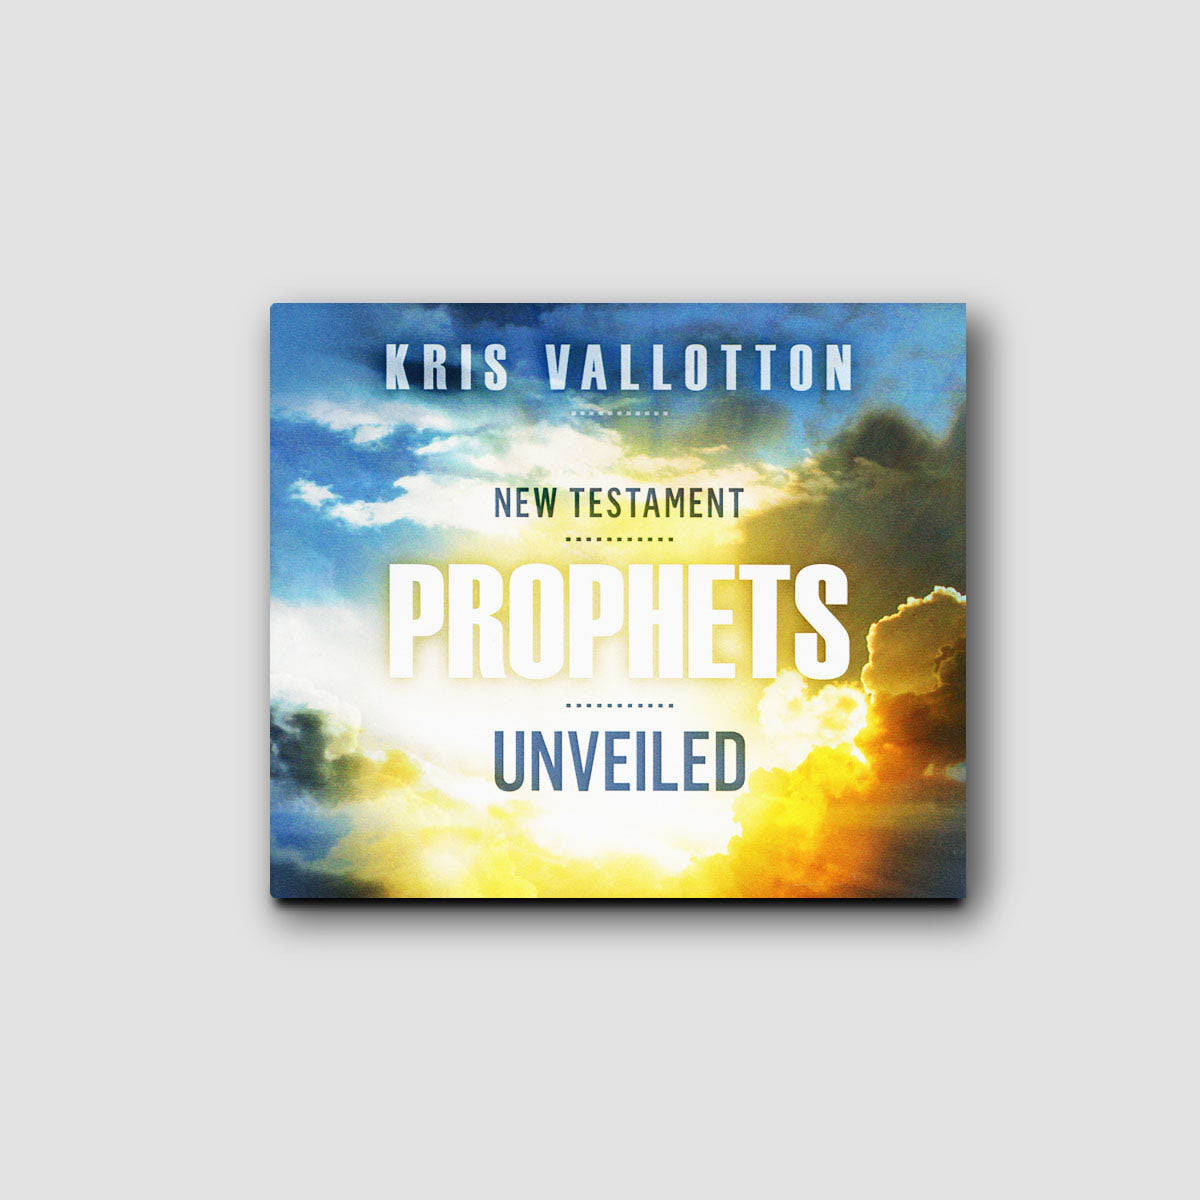 New Testament Prophets Unveiled